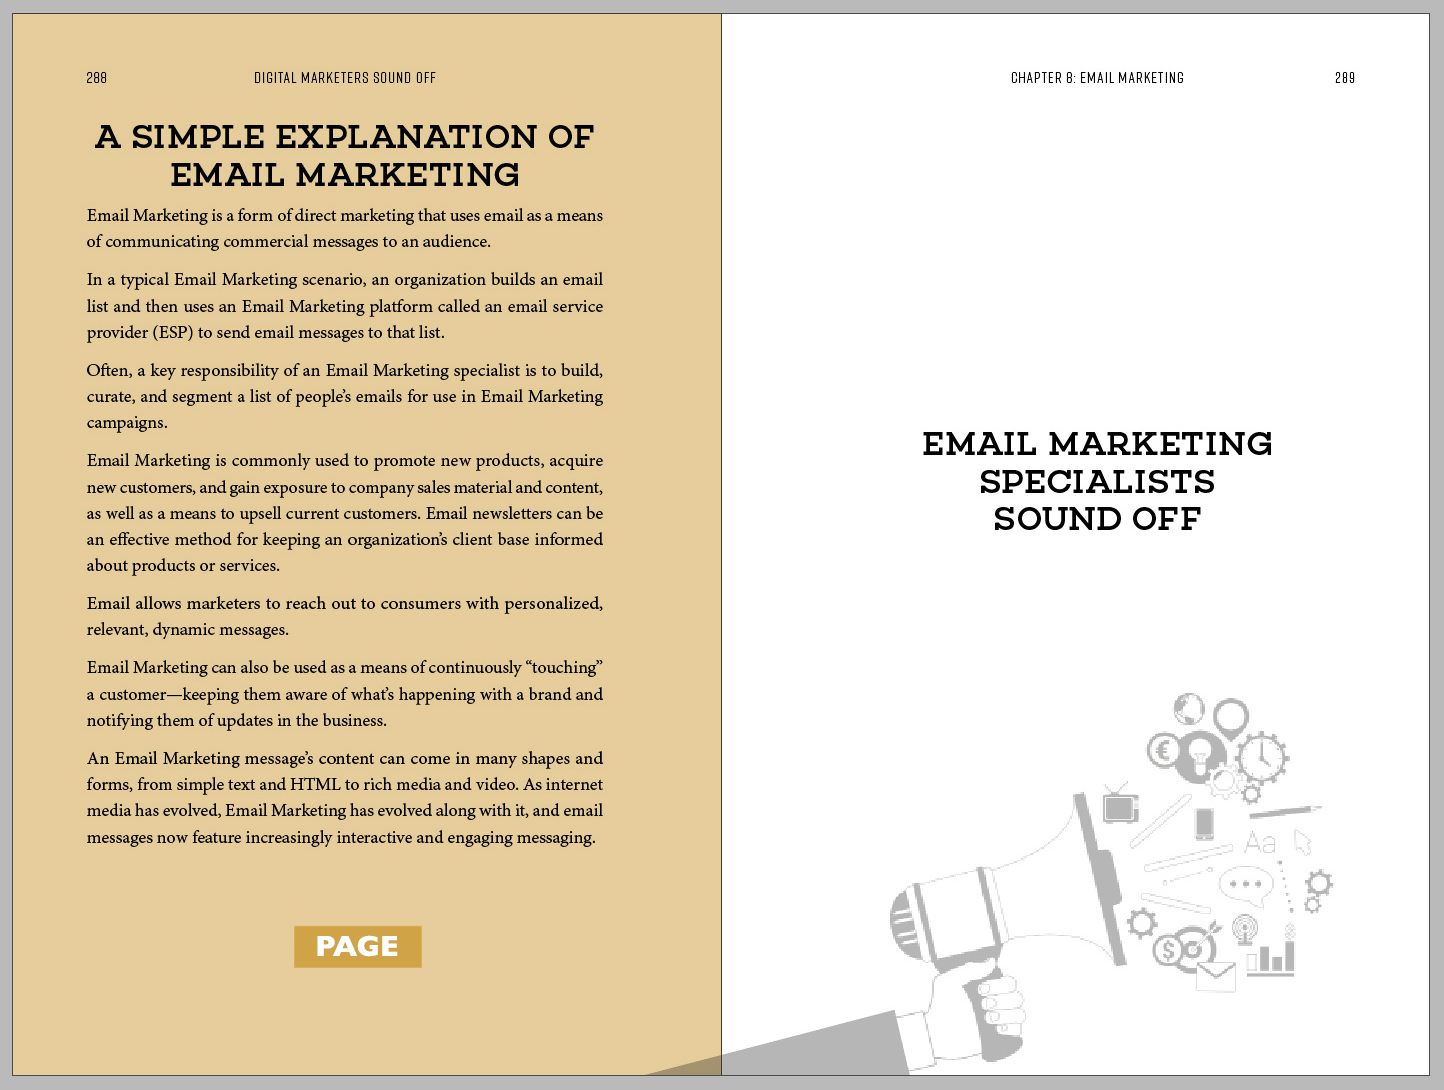 book spread design and layout.jpg